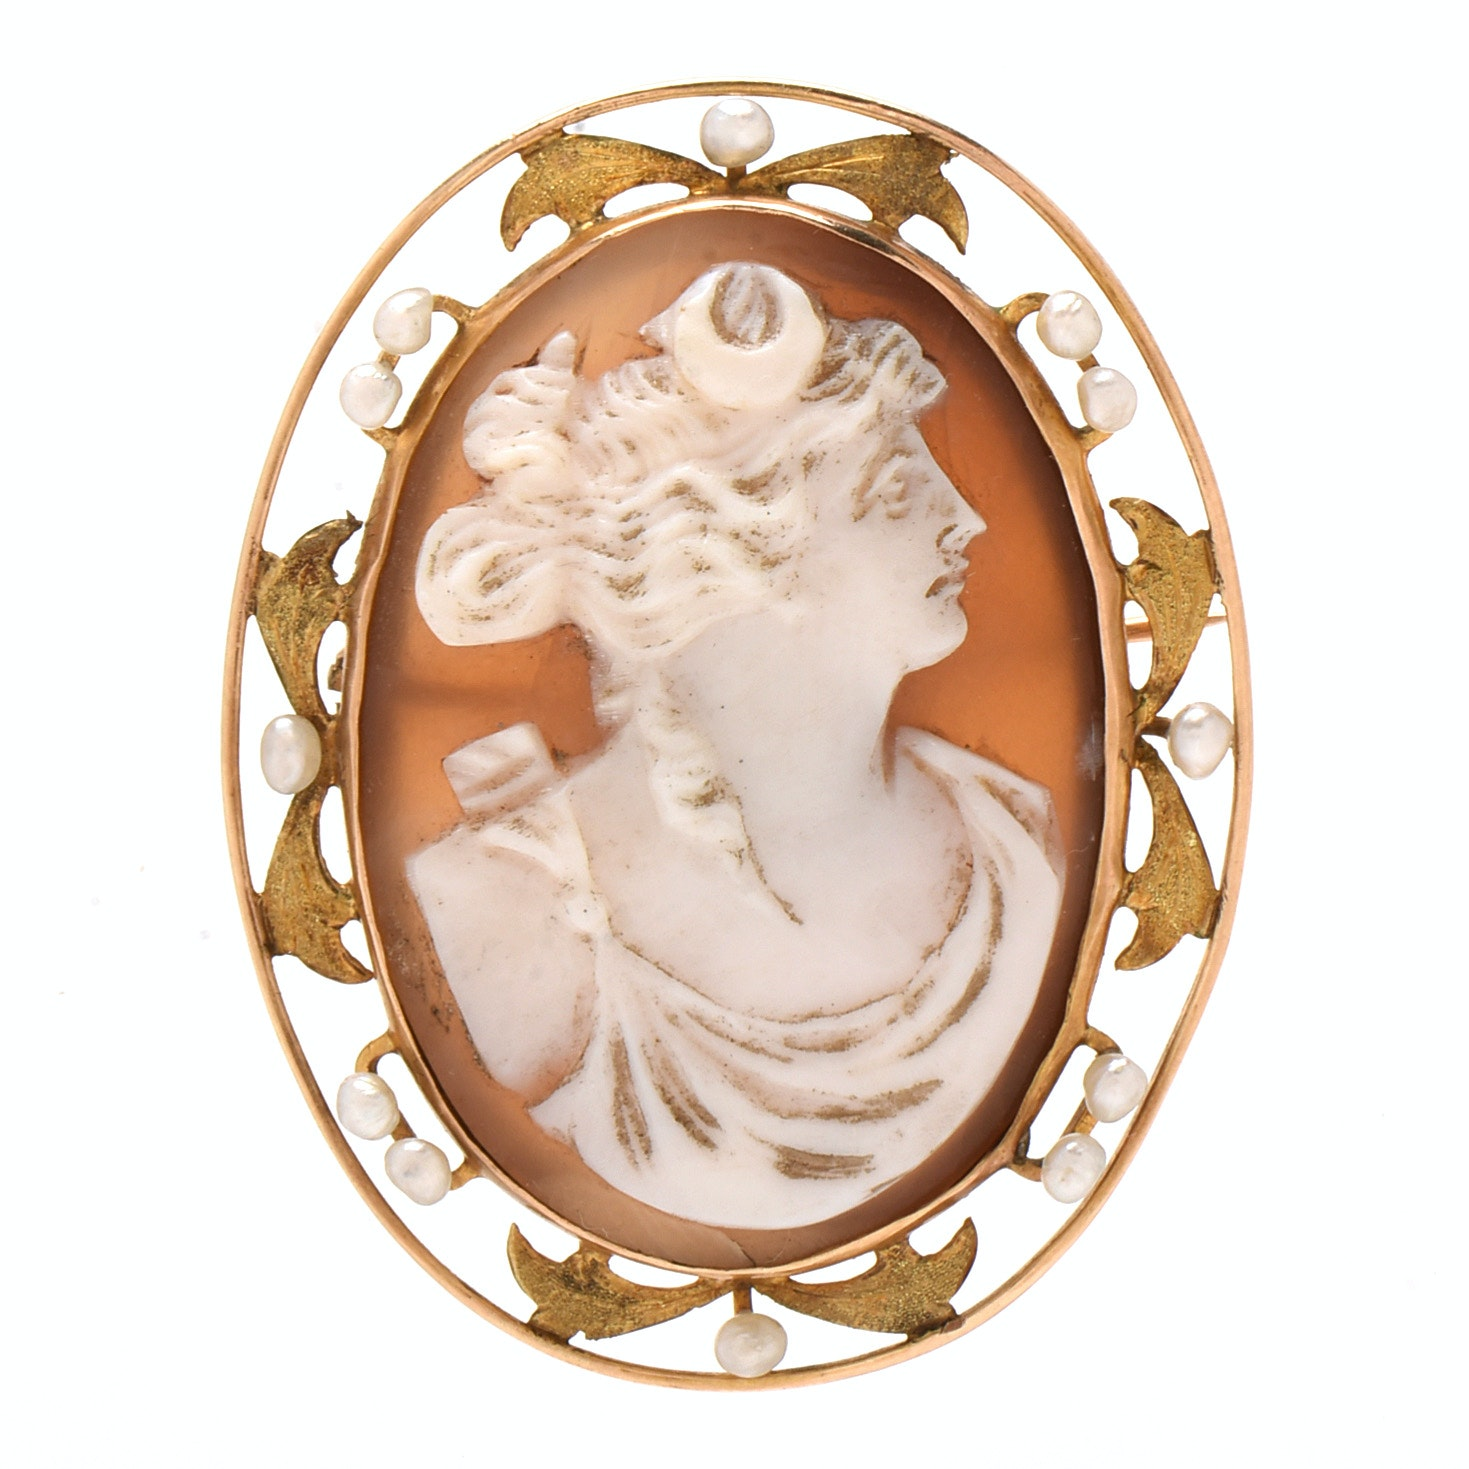 Vintage 10K Yellow Gold Carved Shell Artemis Cameo with Seed Pearls Brooch